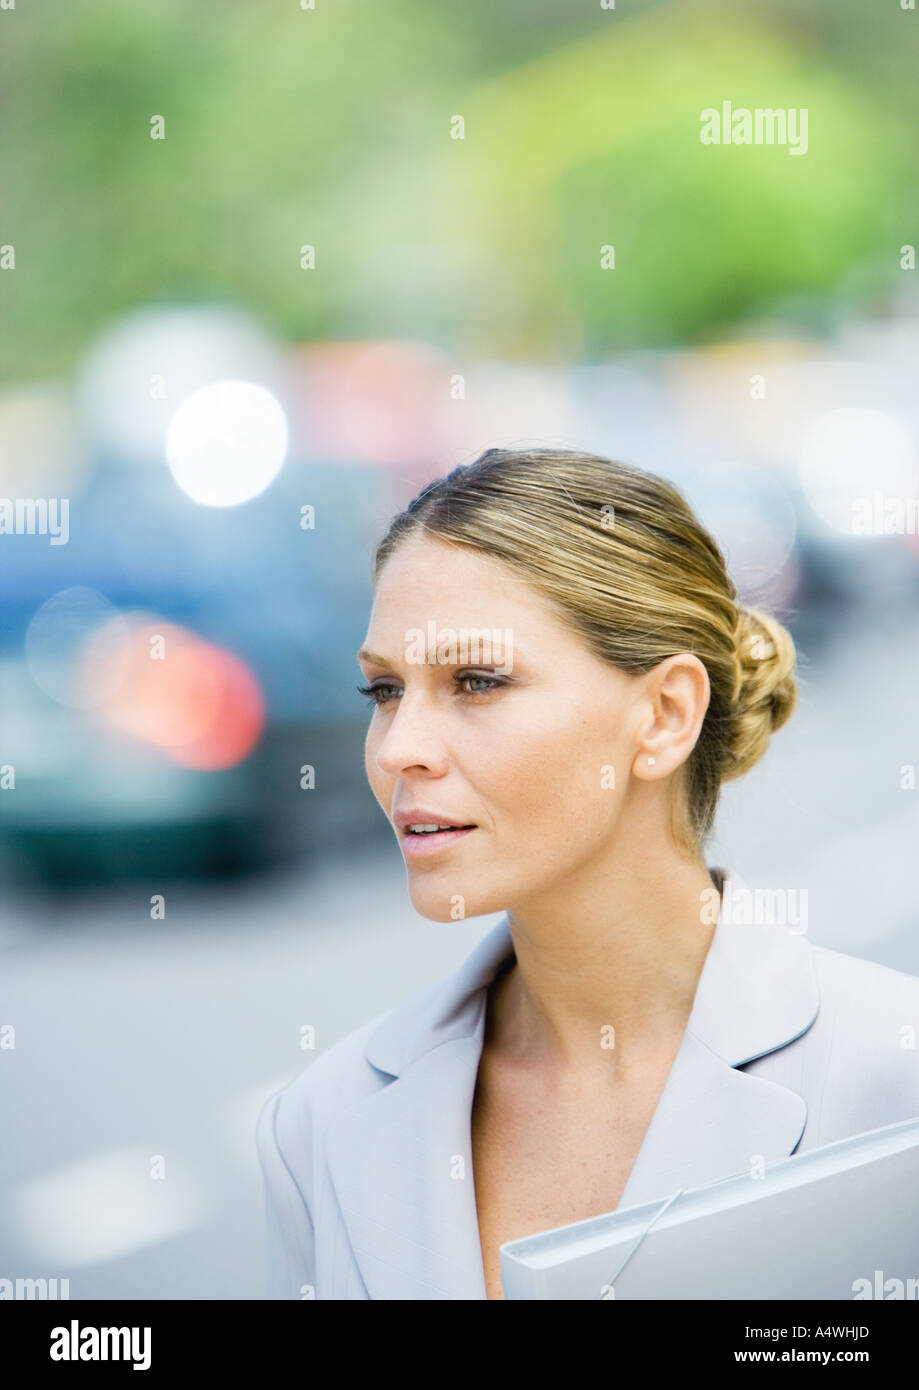 Businesswoman with file folder - Stock Image